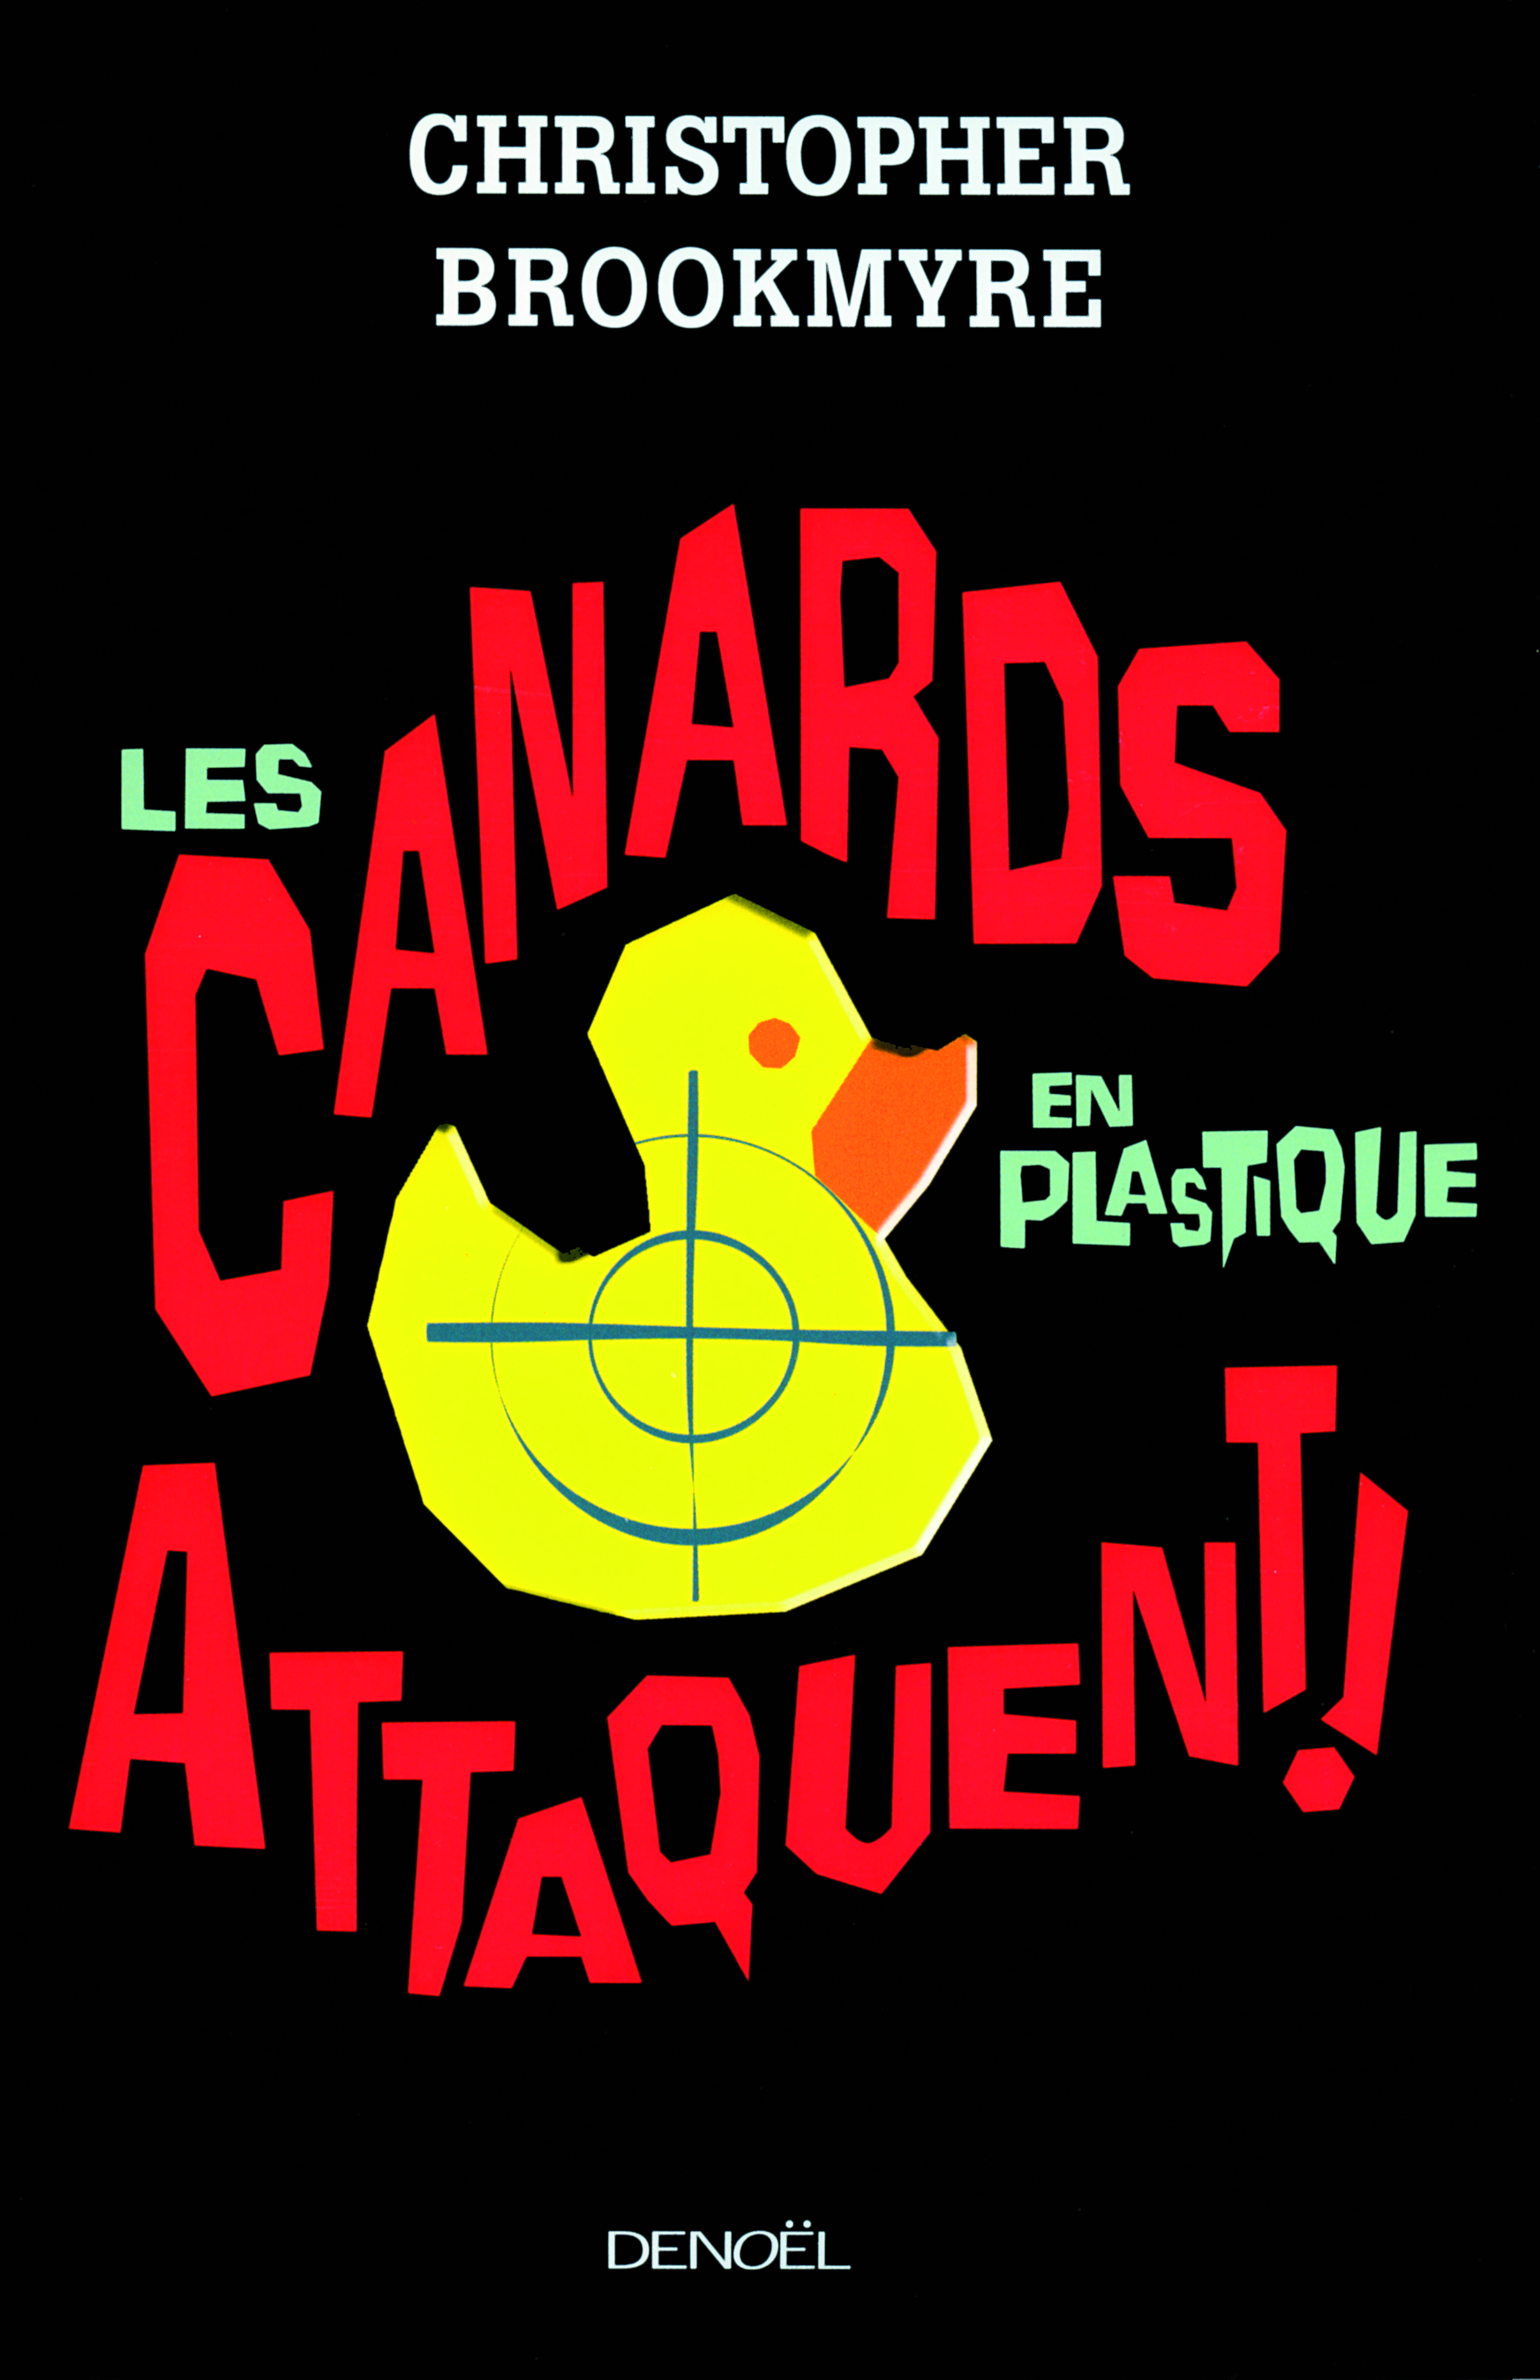 Les canards en plastique attaquent de Christopher Brookmyre